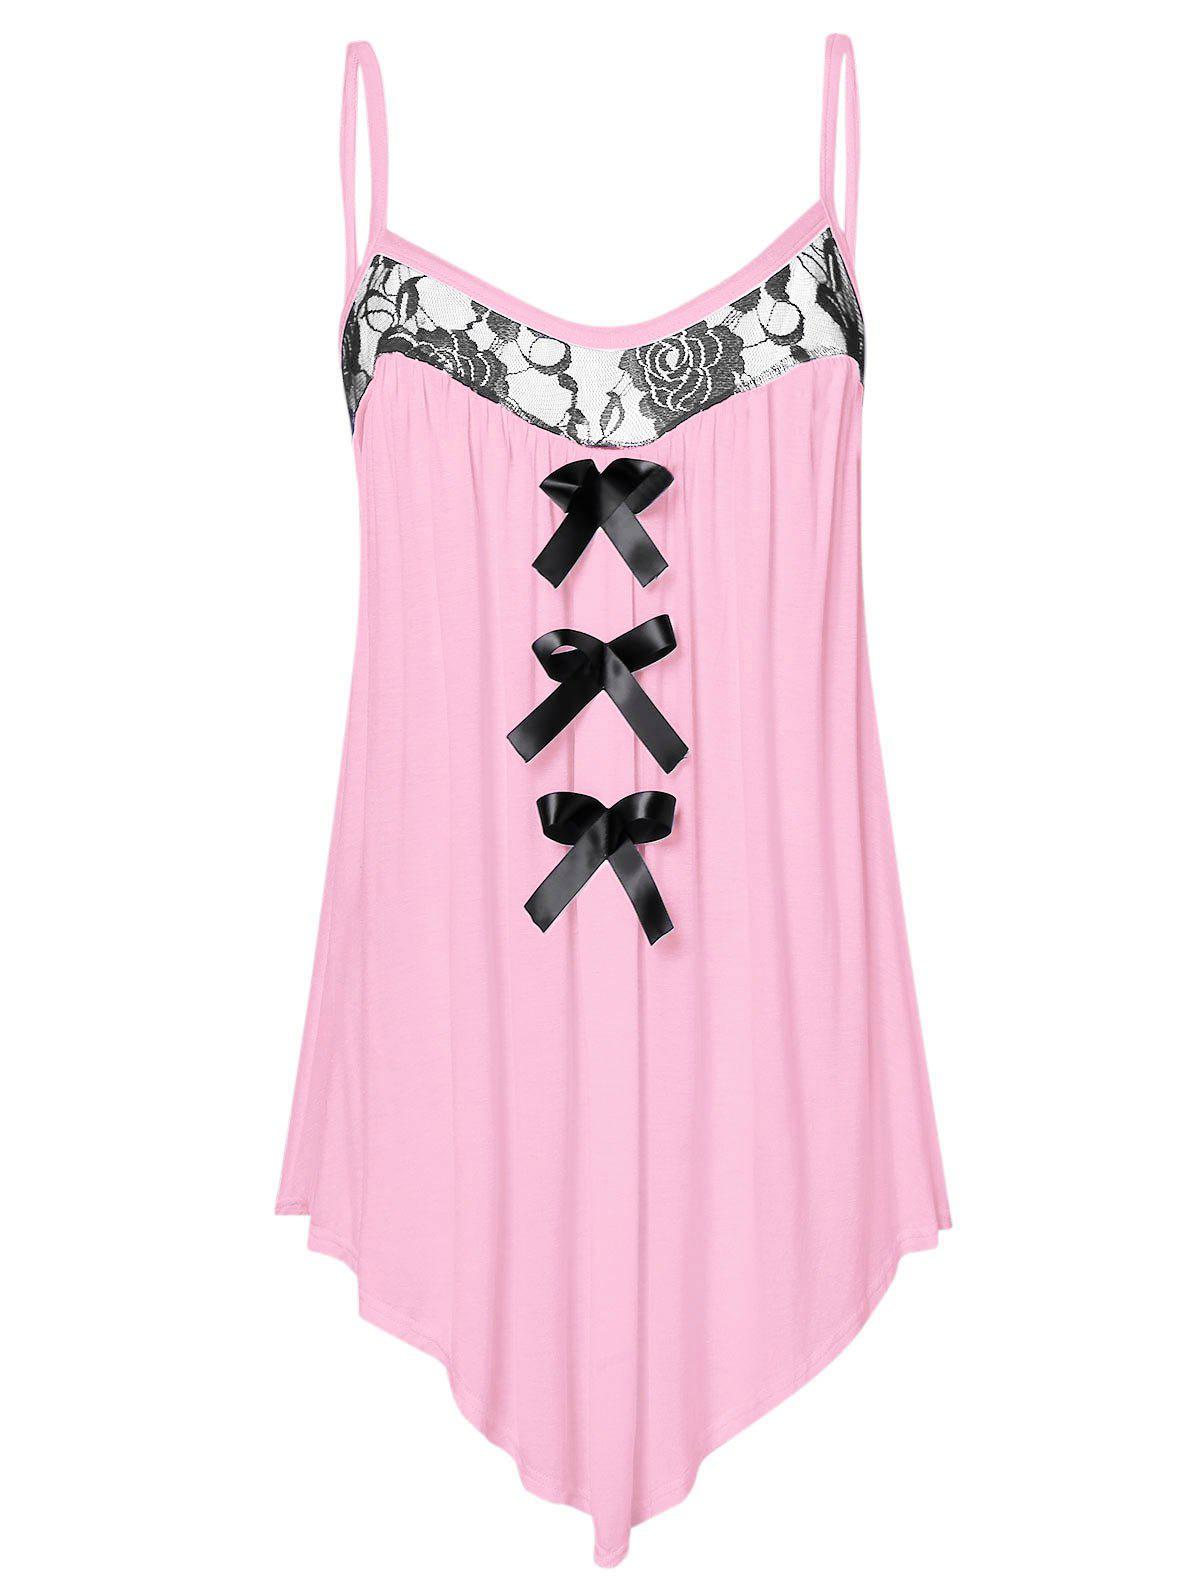 Shop Lace Panel Plus Size Bowknot Embellished Cami Top